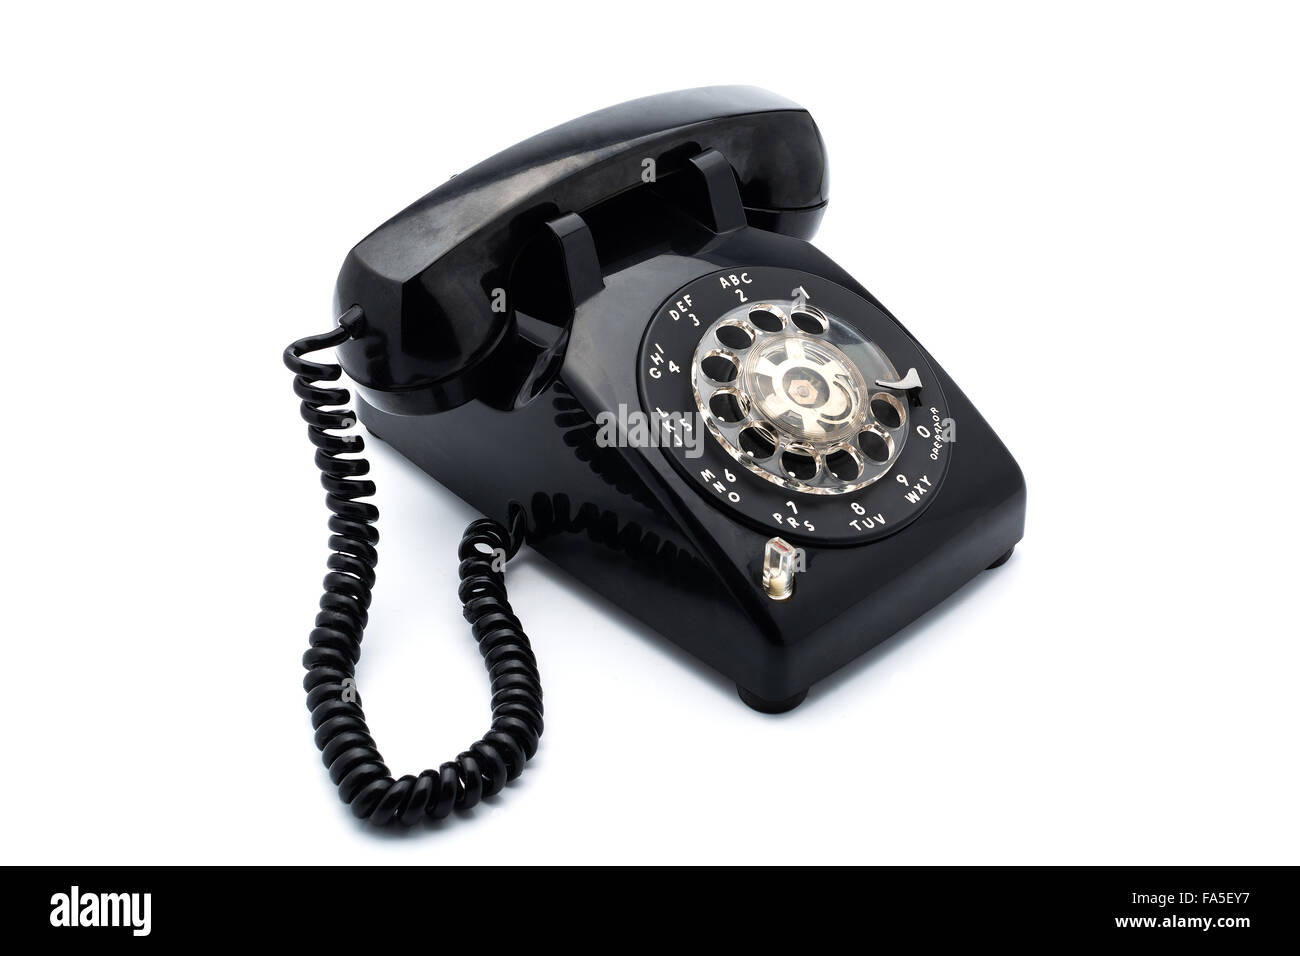 Black old telephon with rotary dial on white background - Stock Image